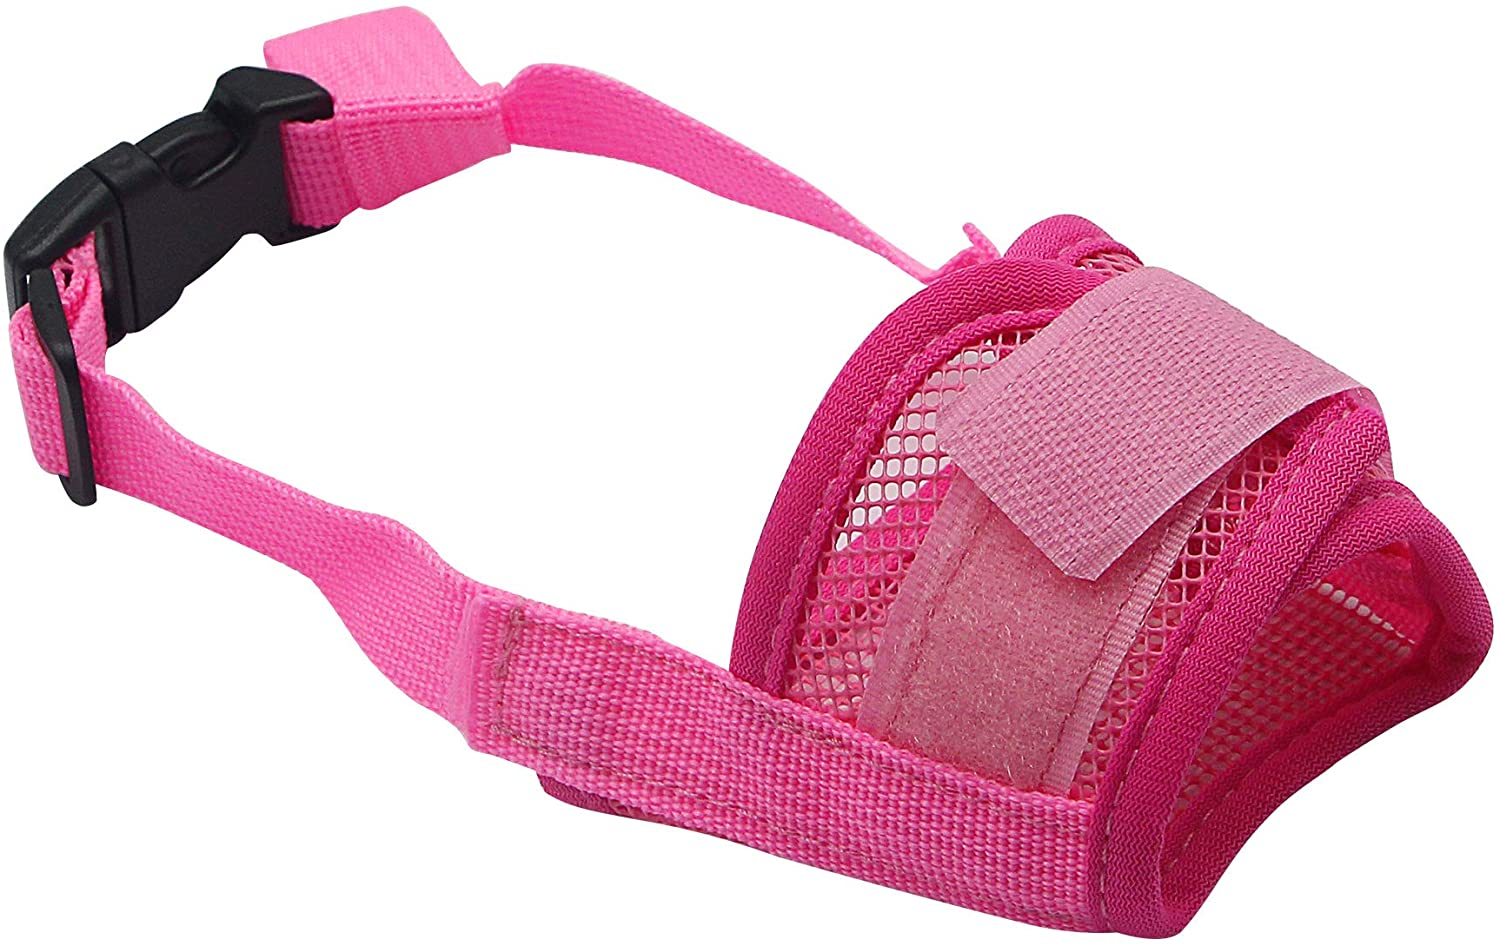 YAODHAOD Nylon Mesh Breathable Dog Mouth Cover, Quick Fit Dog Muzzle with Adjustable Straps,Pet Mouth Cover, to Prevent Biting and Screaming to Prevent Accidental Eating